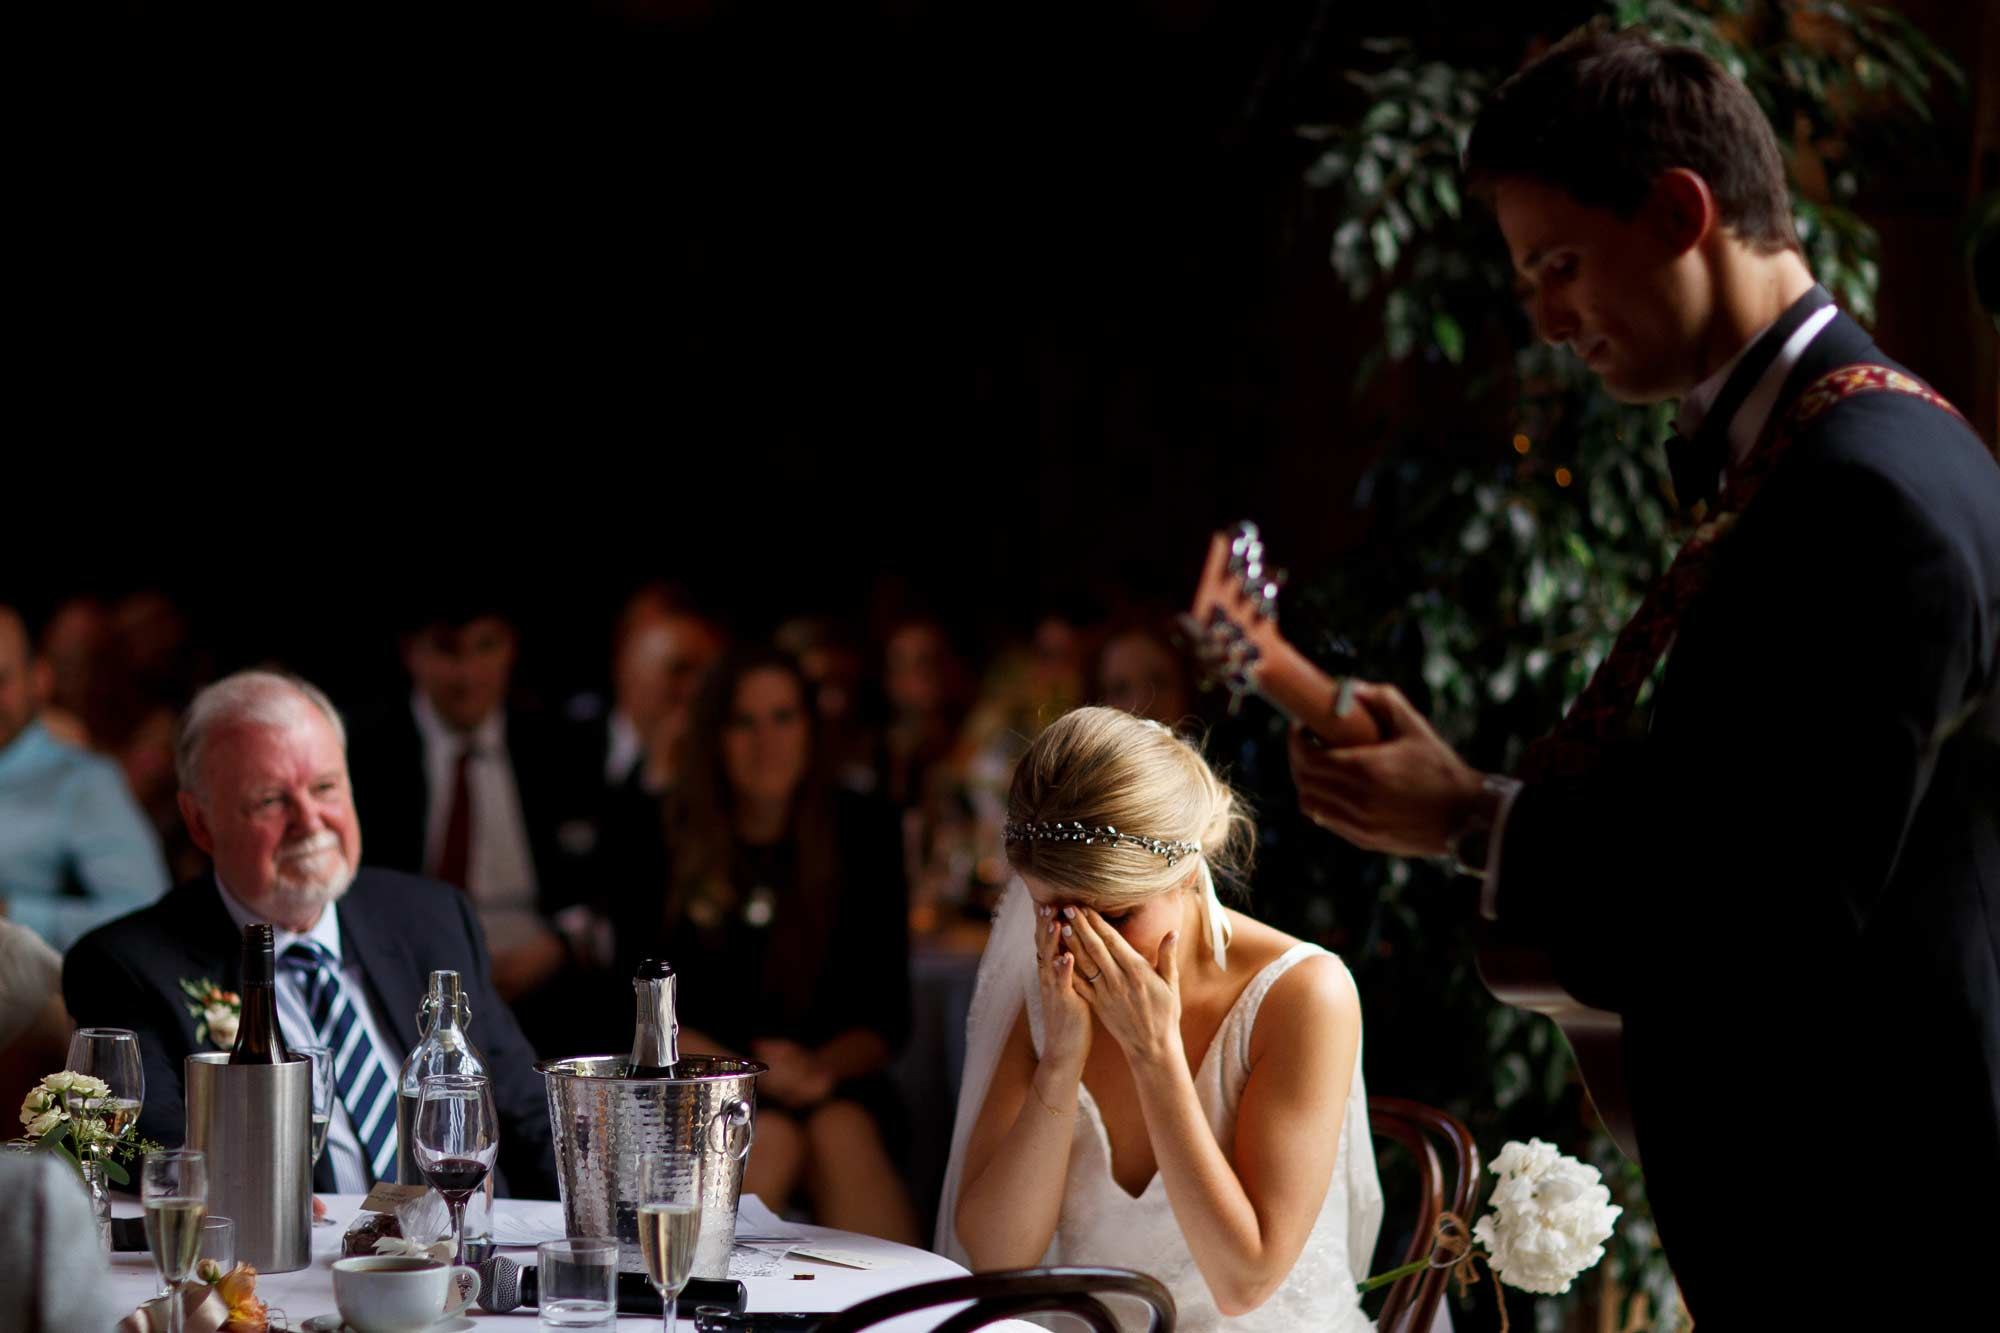 Emotional bride as her groom serenades her by playing the guitar during wedding speeches